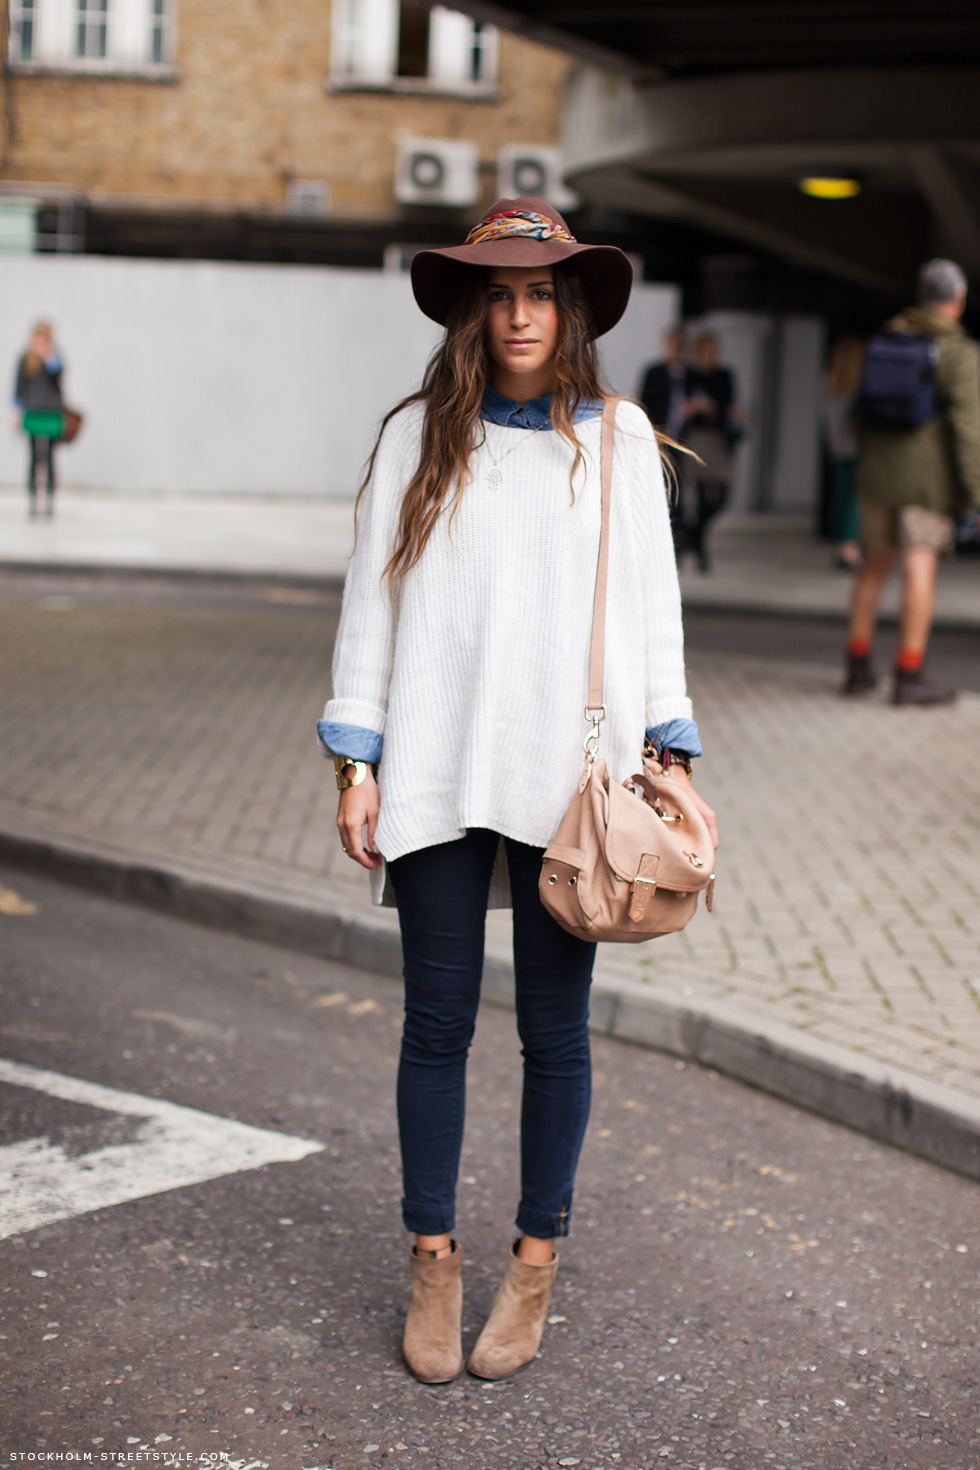 Fashion Oversized Sweaters On Pinterest Oversized Sweaters Sweaters And Pullover Sweaters